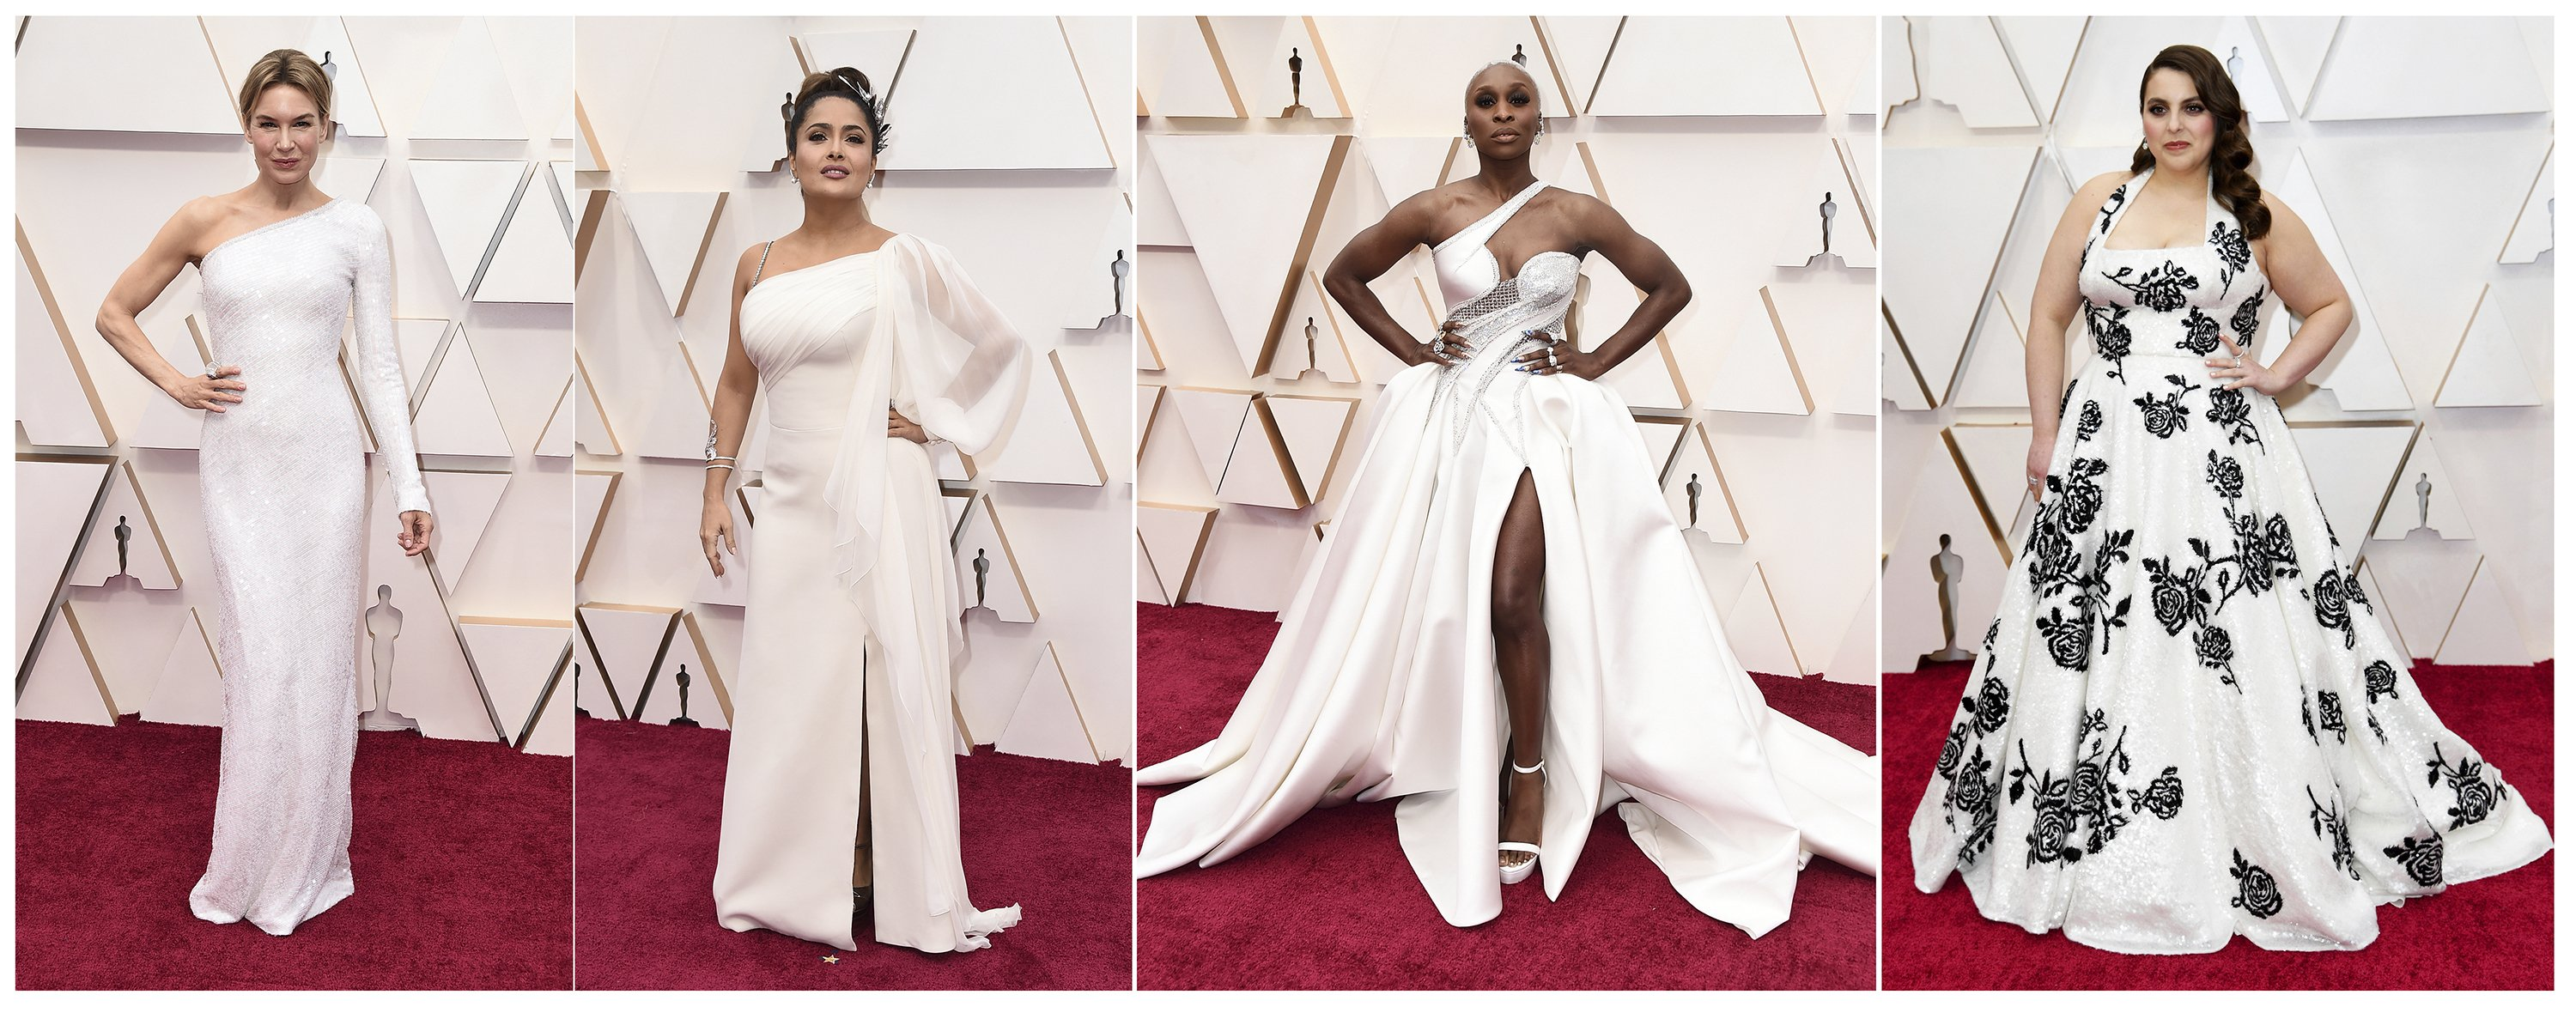 A breakdown of the gowns, bling and beauty from the Oscars